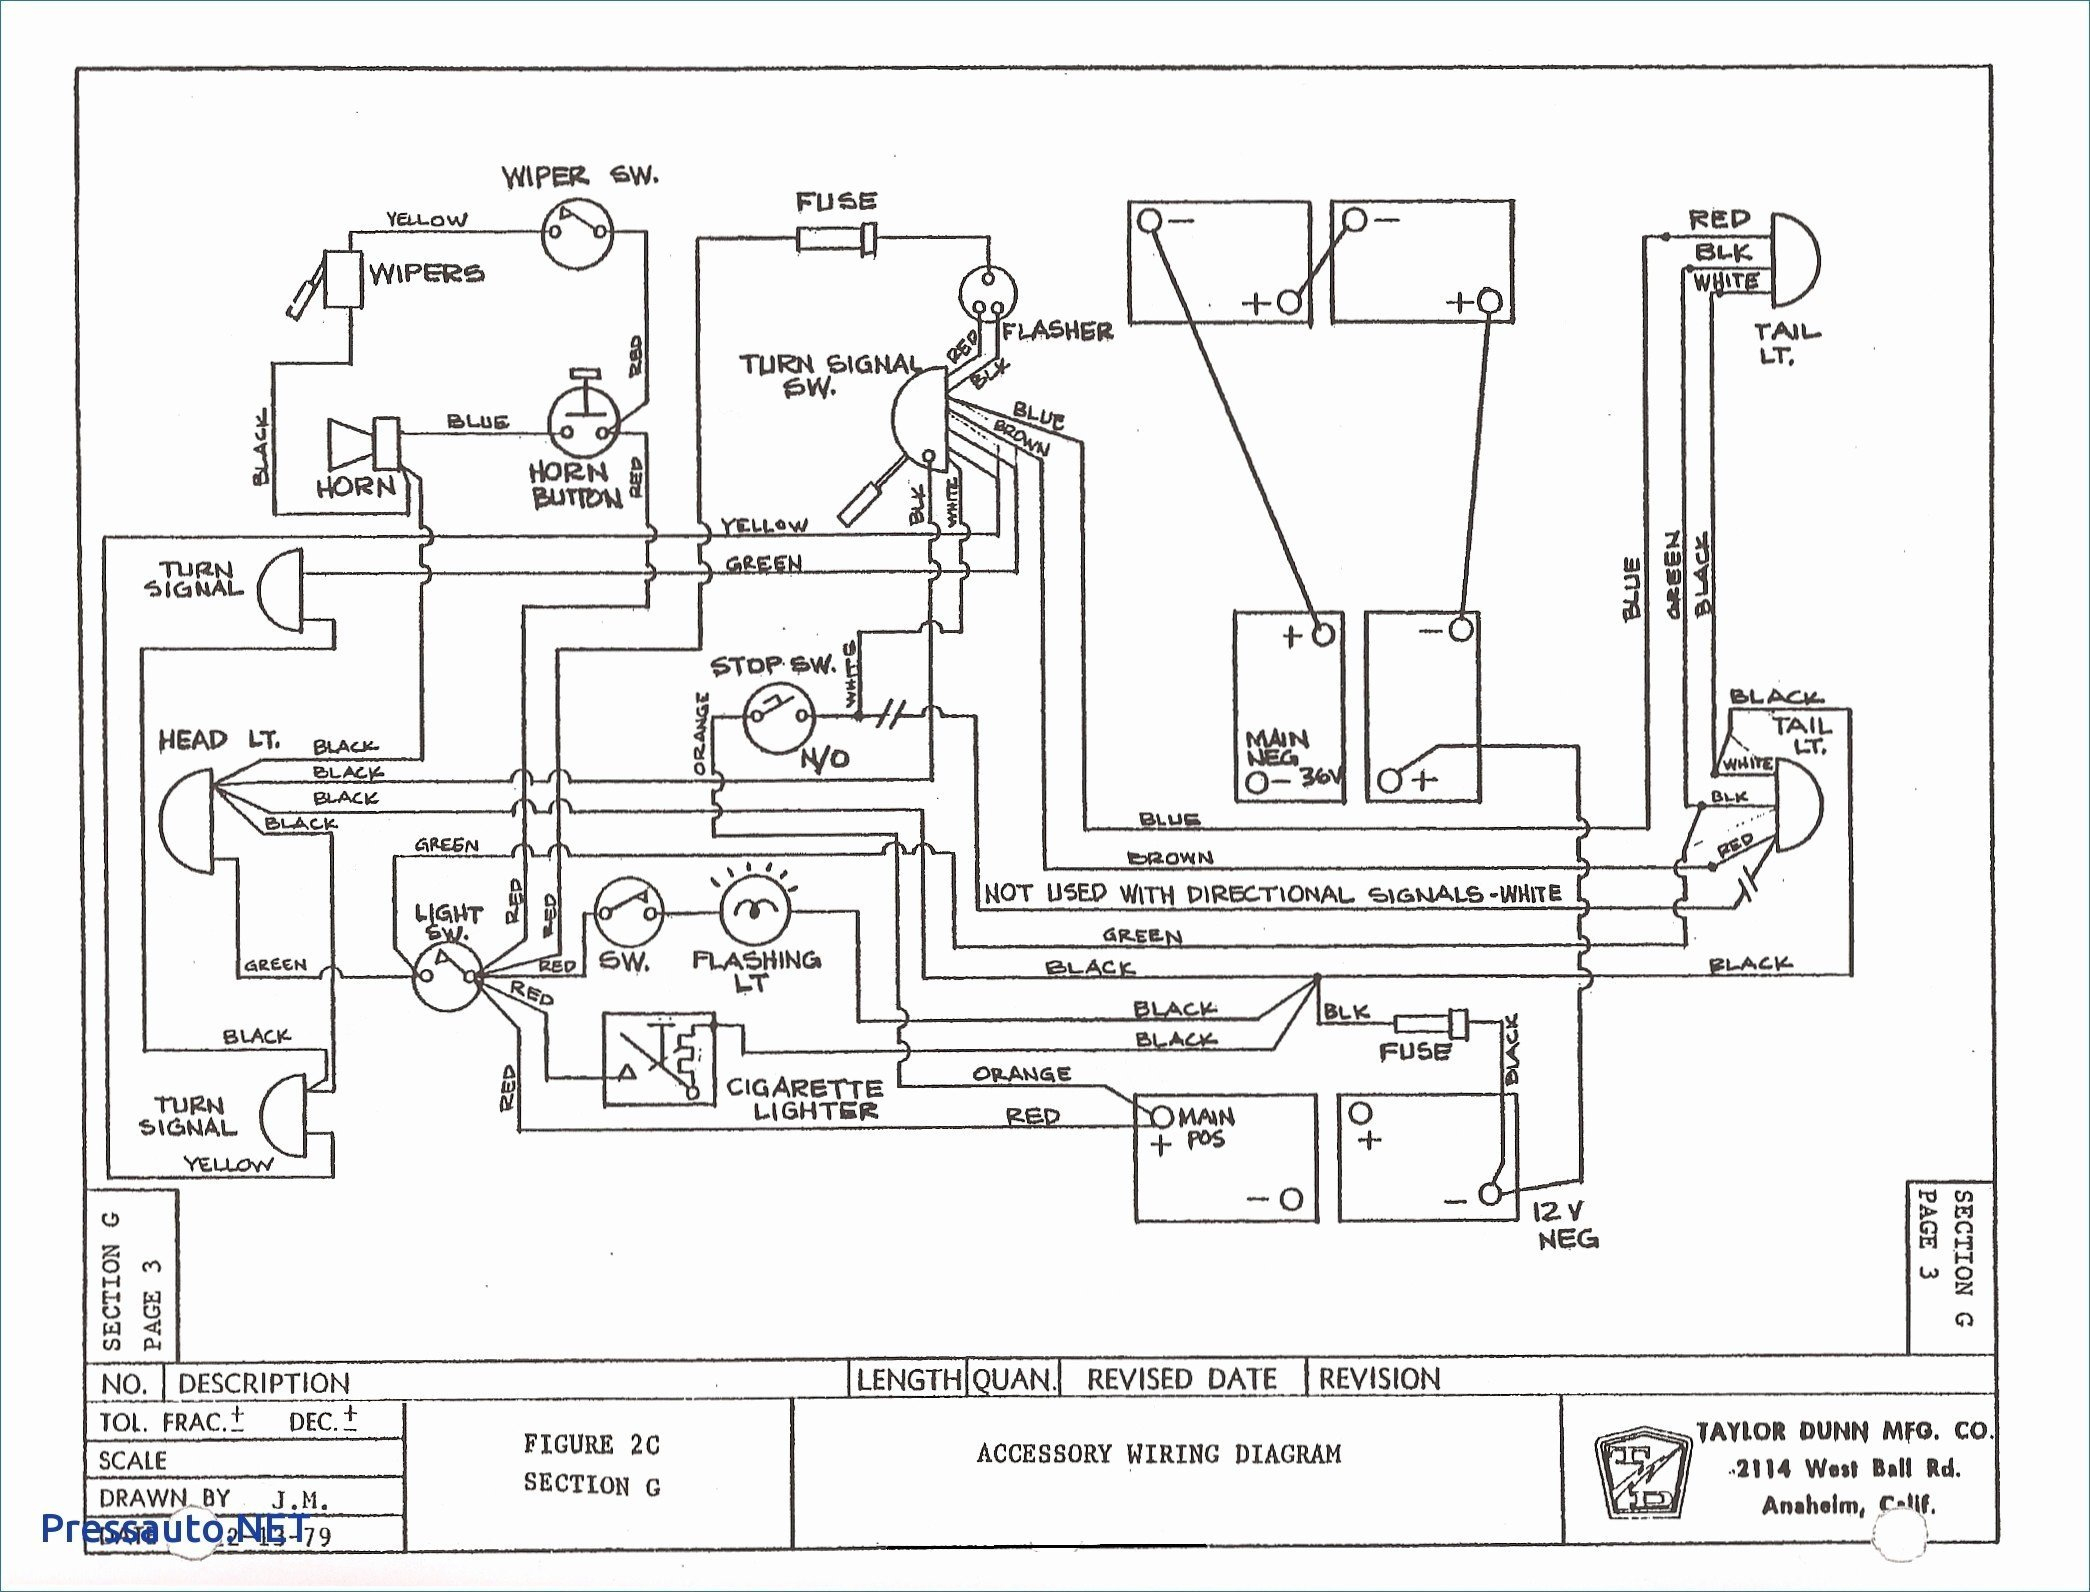 DIAGRAM] 1996 Club Car Golf Cart Battery Wiring Diagram FULL Version HD  Quality Wiring Diagram - FIRSTSTEPDFW.JEPIX.FRfirststepdfw.jepix.fr